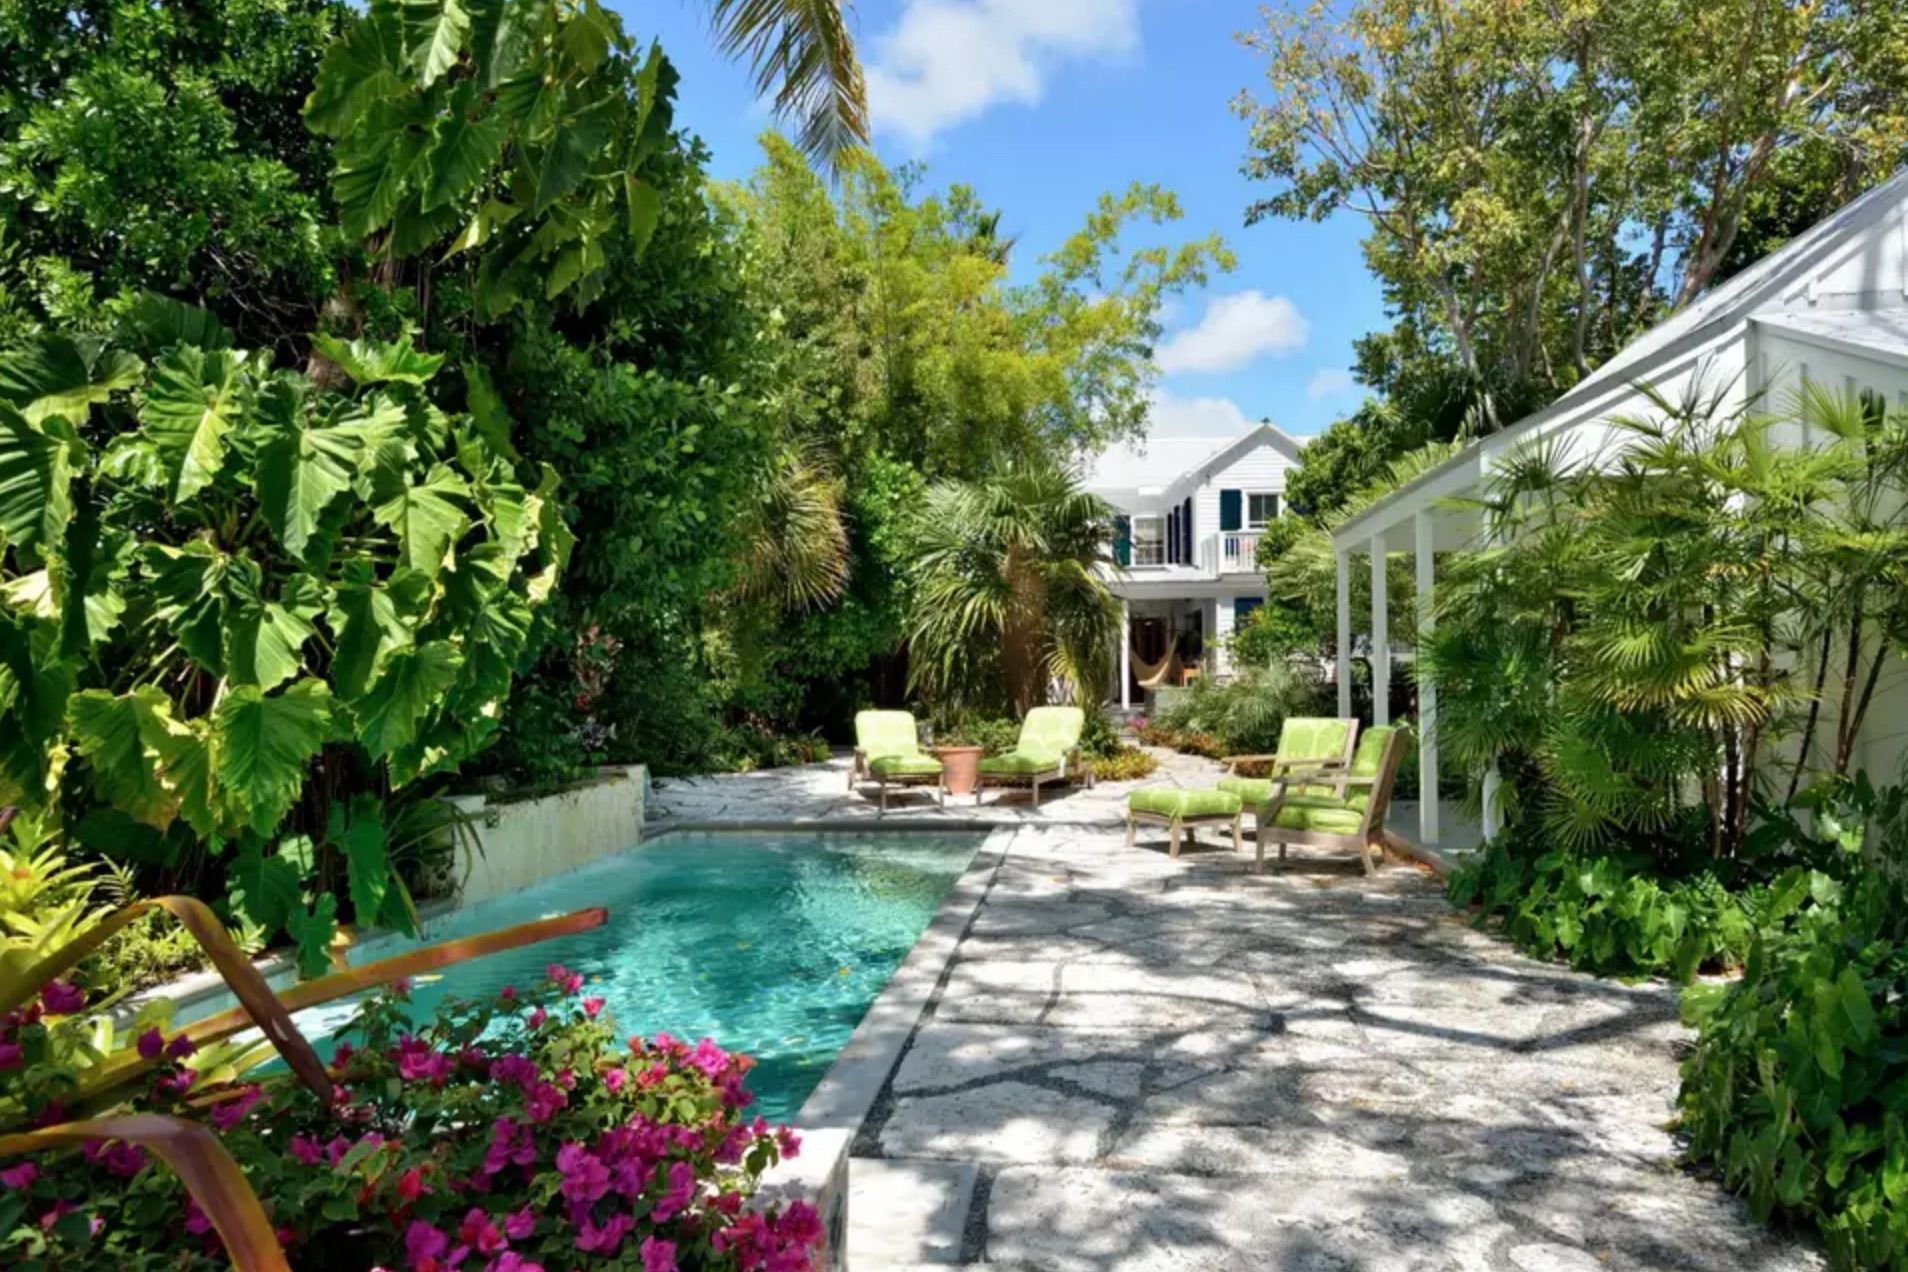 35 Pool Landscaping Ideas